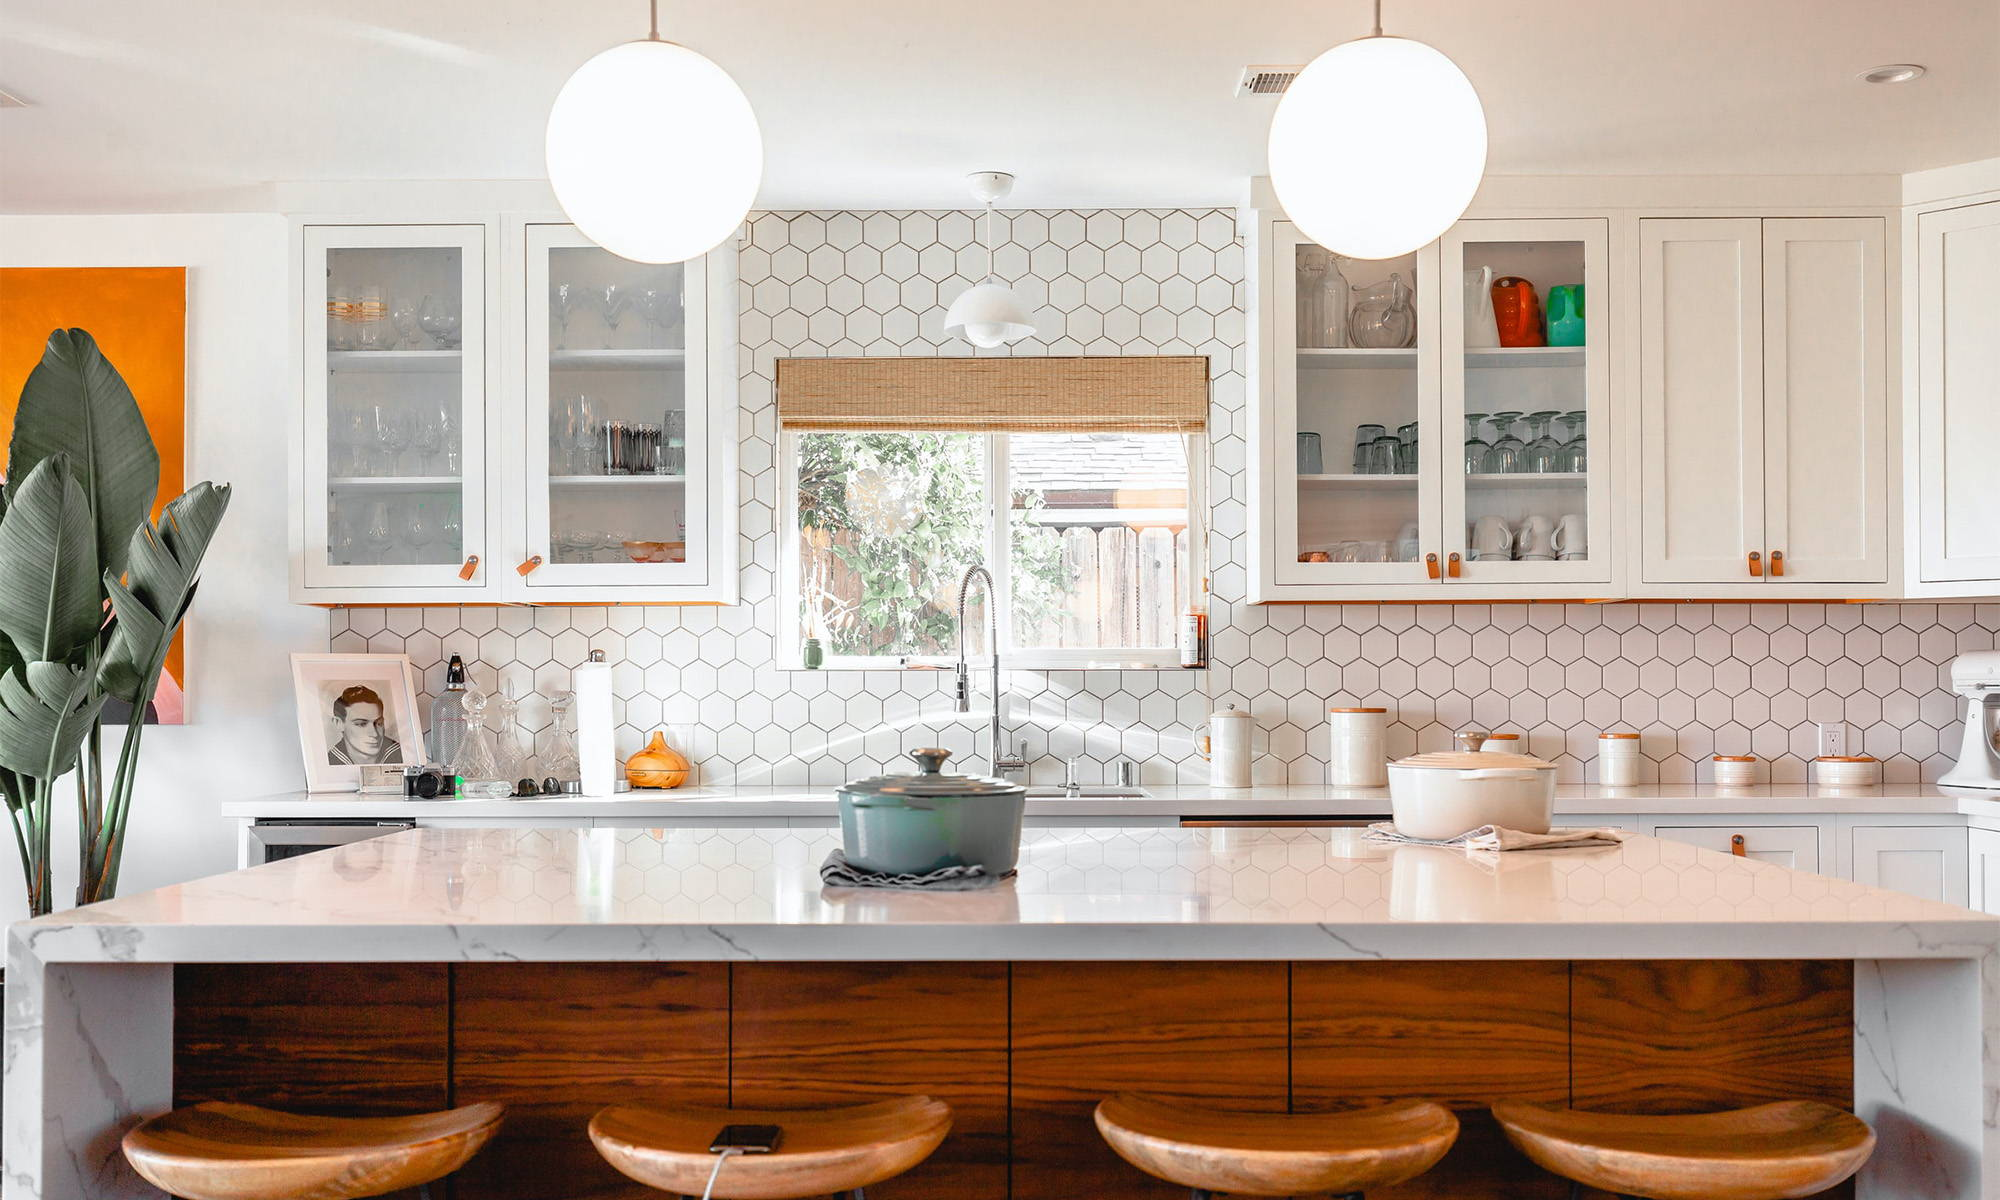 Create Your Dream Kitchen With These Flawless Kitchen Items